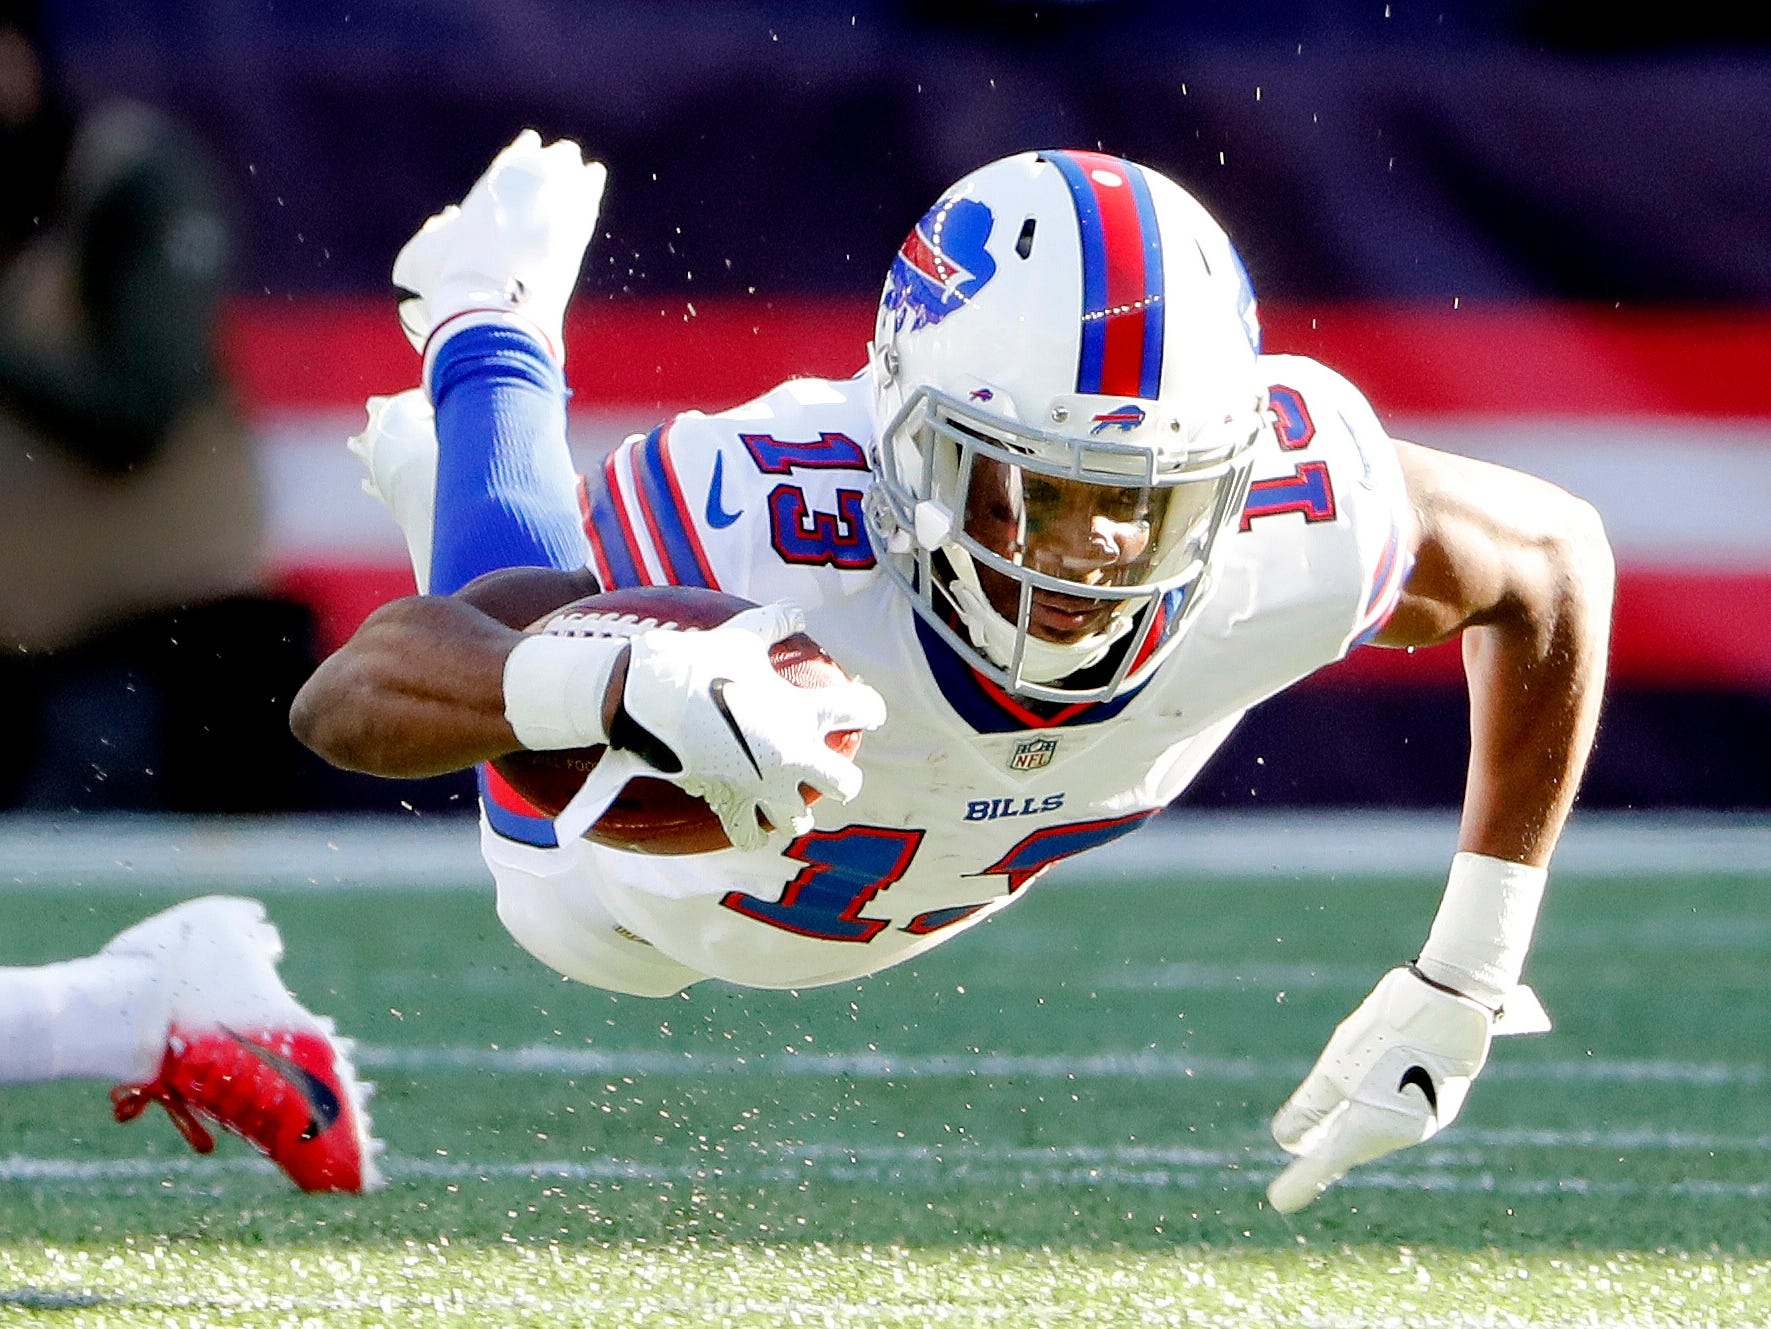 Dec 23, 2018; Foxborough, MA, USA; Buffalo Bills receiver Victor Bolden Jr. is sent flying during the opening kick off during the first quarter against the New England Patriots at Gillette Stadium. Mandatory Credit: Winslow Townson-USA TODAY Sports